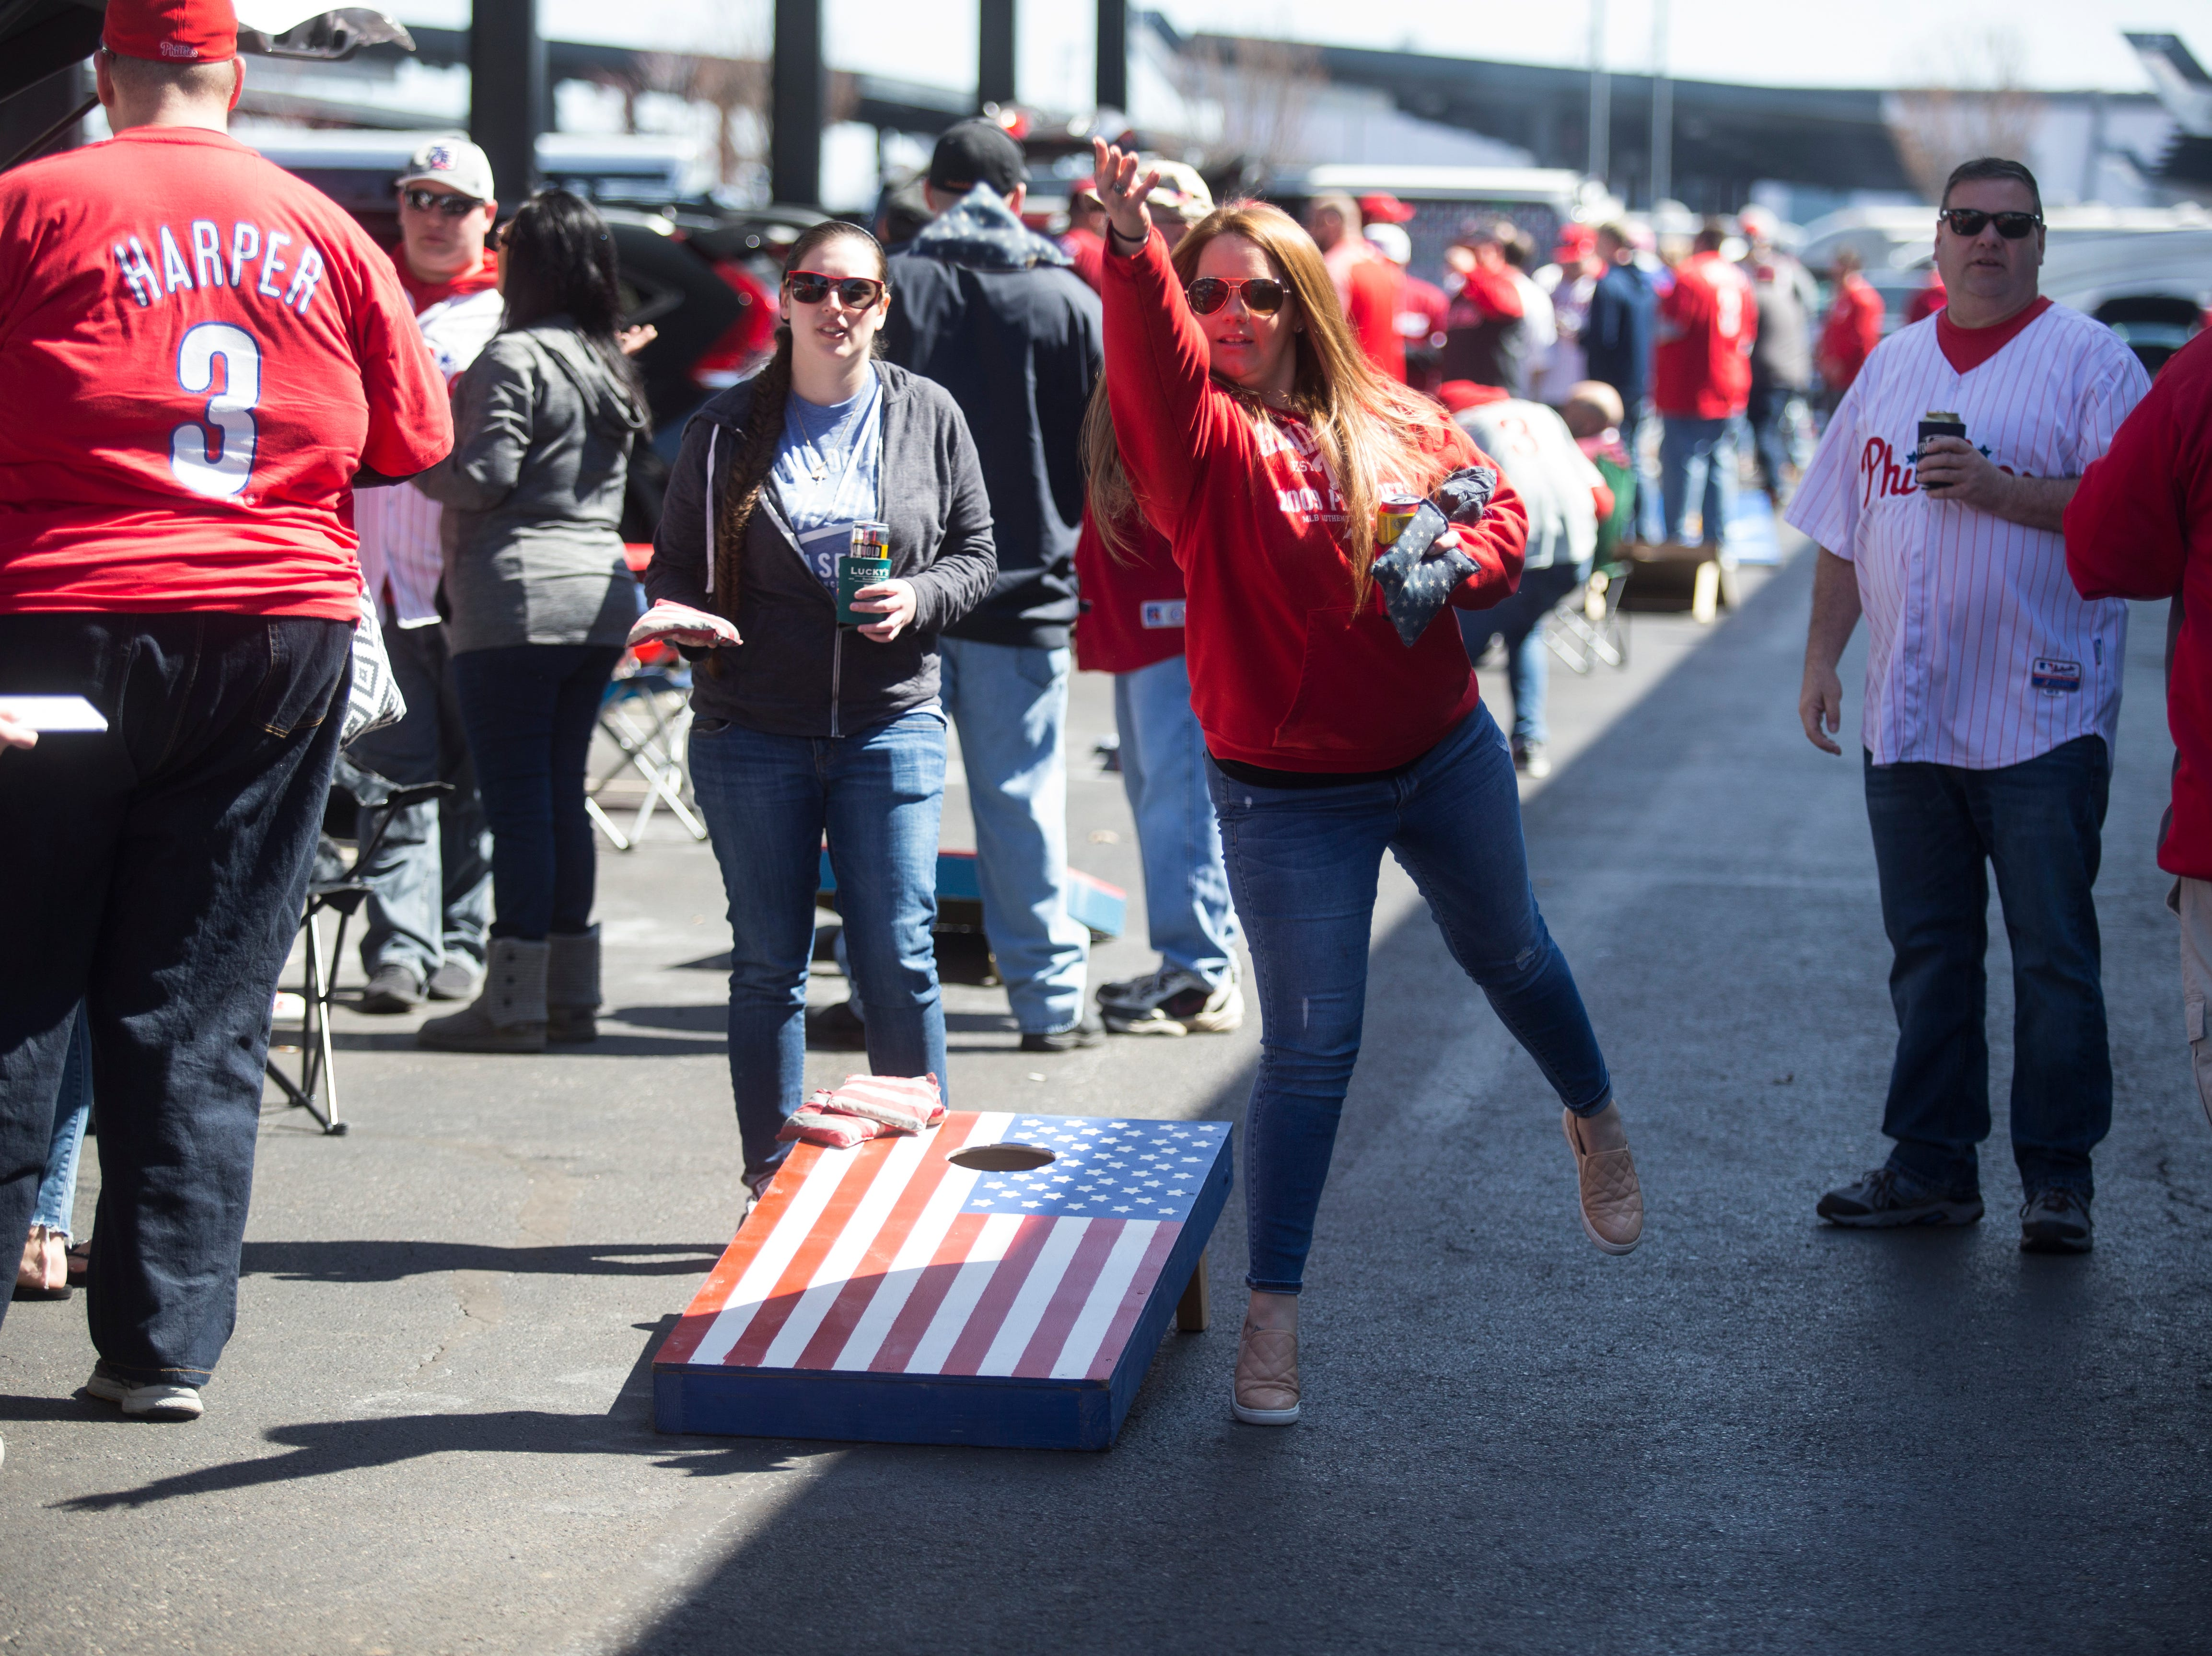 Phillies fans arrive early with high expectations of Harper and co.